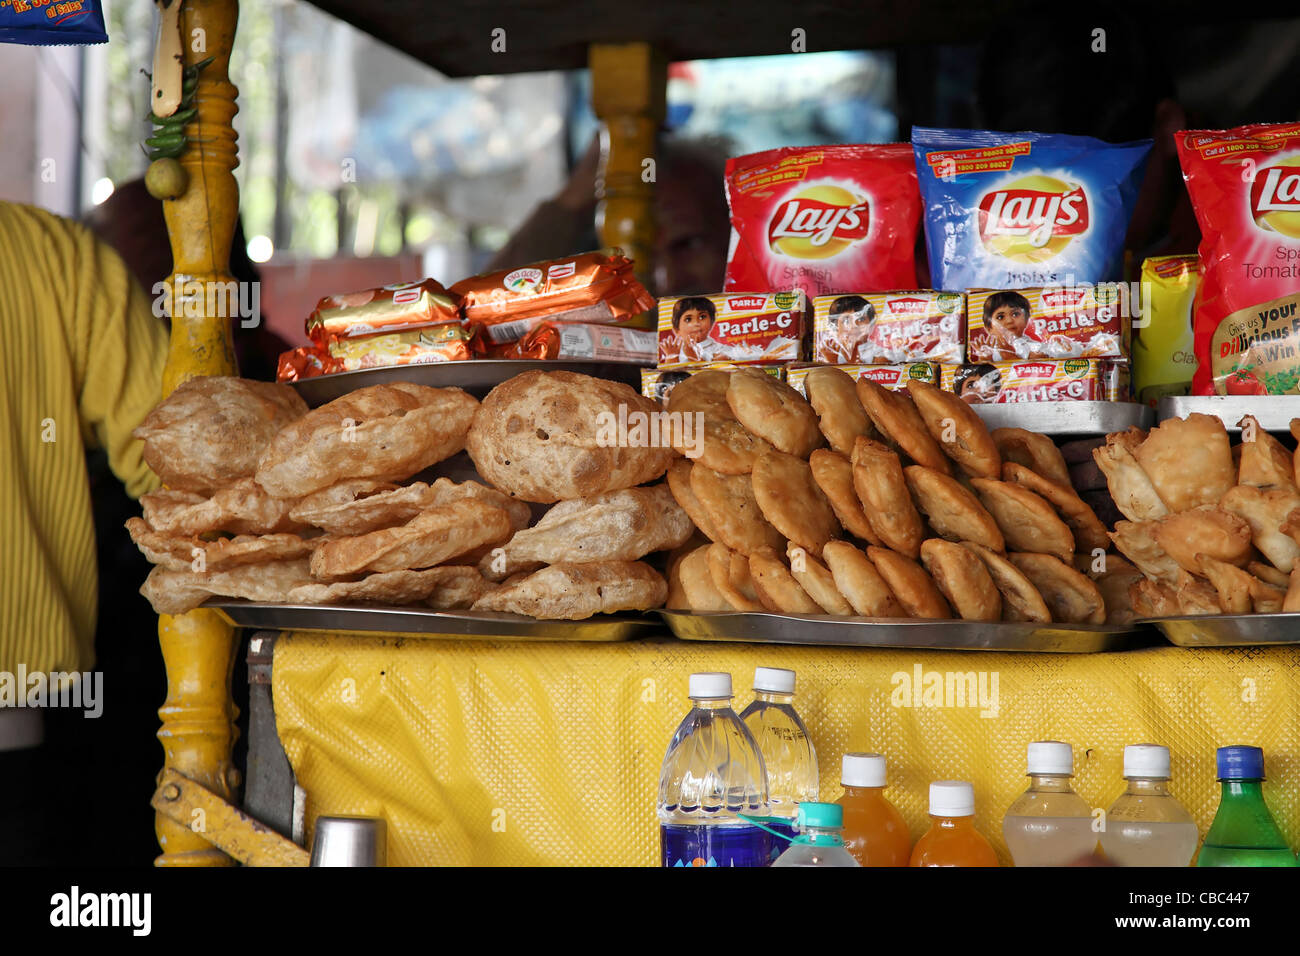 Indian Food stall,Food, more, store, bakery, gourmet, fried, window display, shelf, ladle, bun, tray, merchandise, - Stock Image